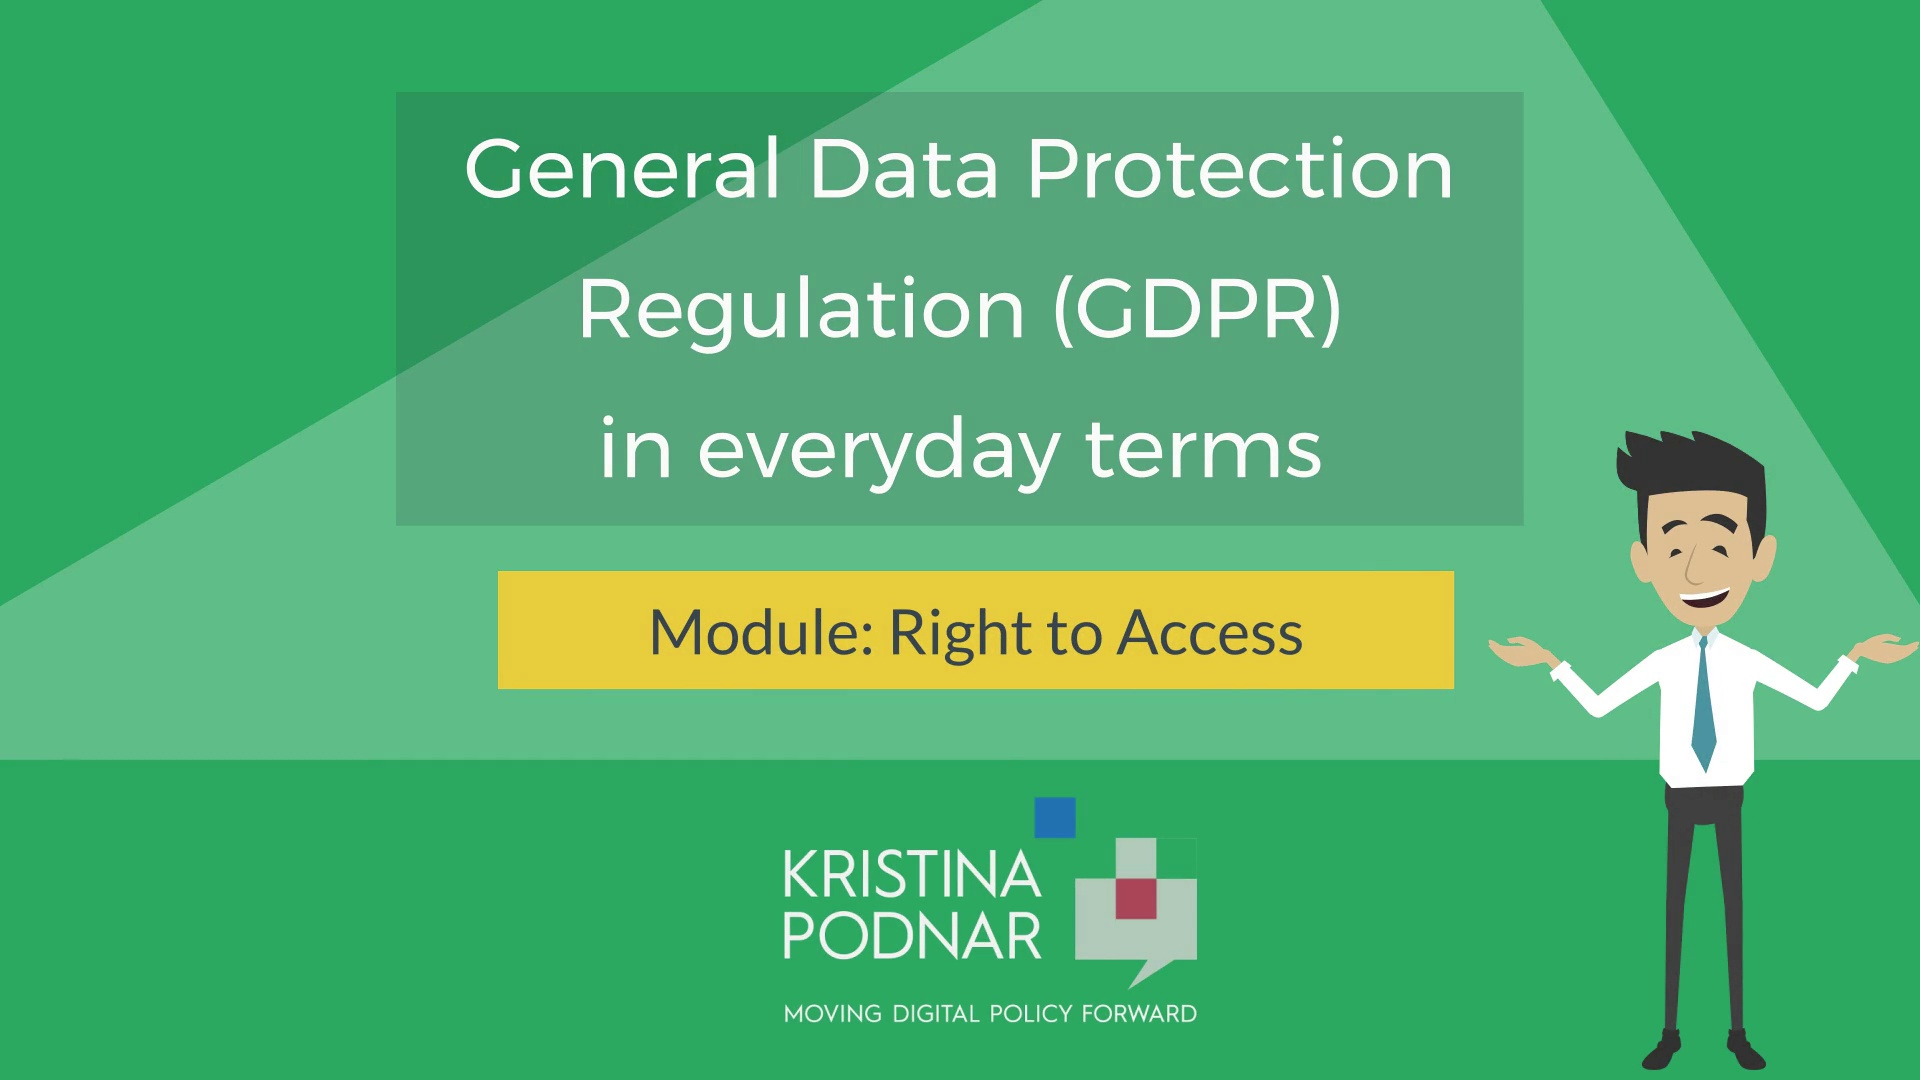 GDPR:  Right to Access